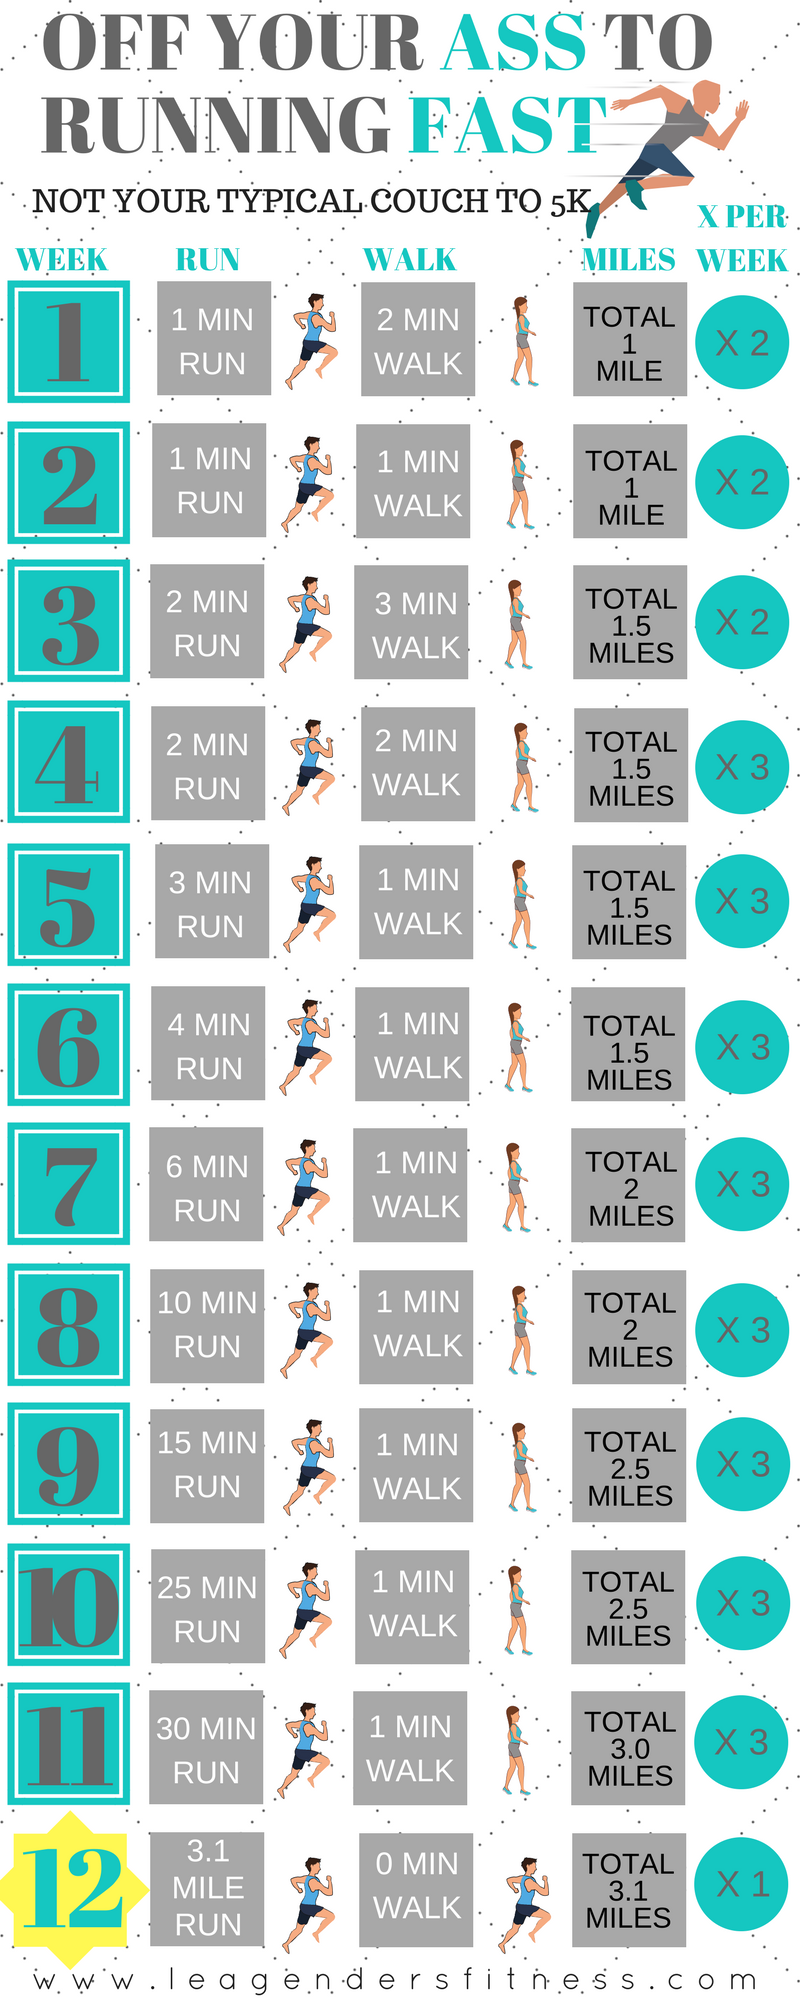 12 Week 5K training plan. Save to Pinterest for later.